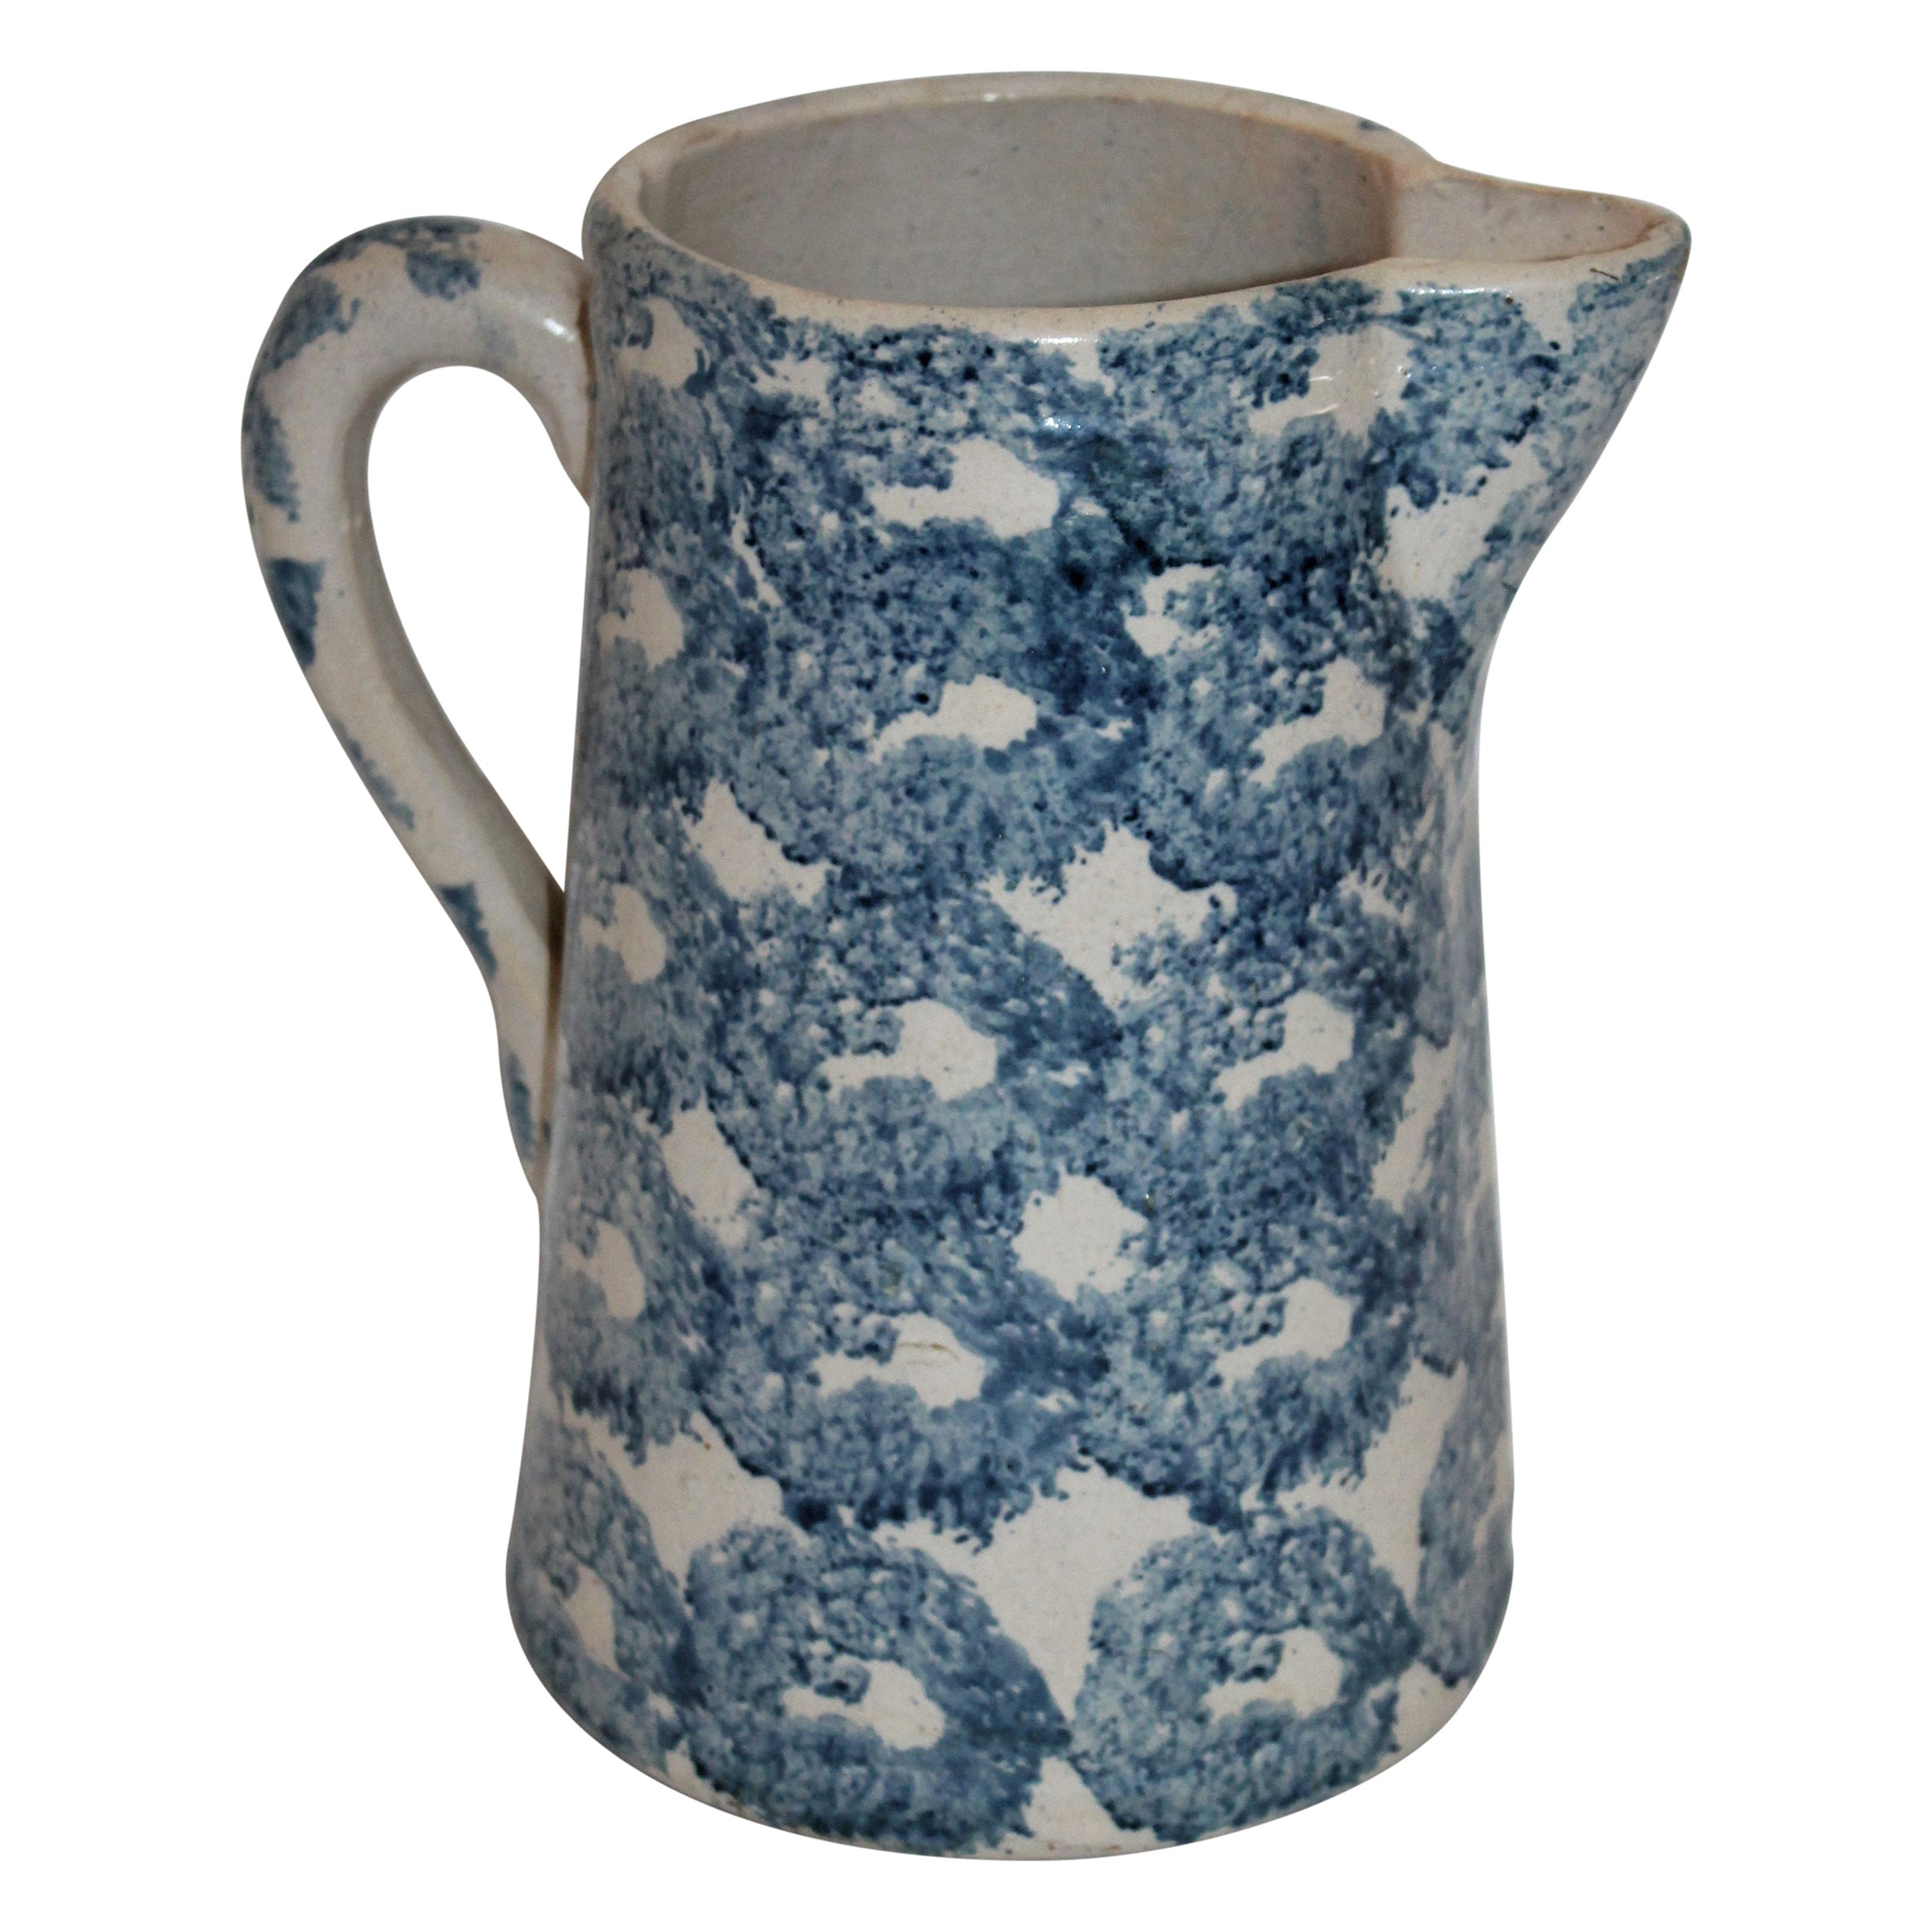 19th Century Sponge Ware Patterned Pitcher